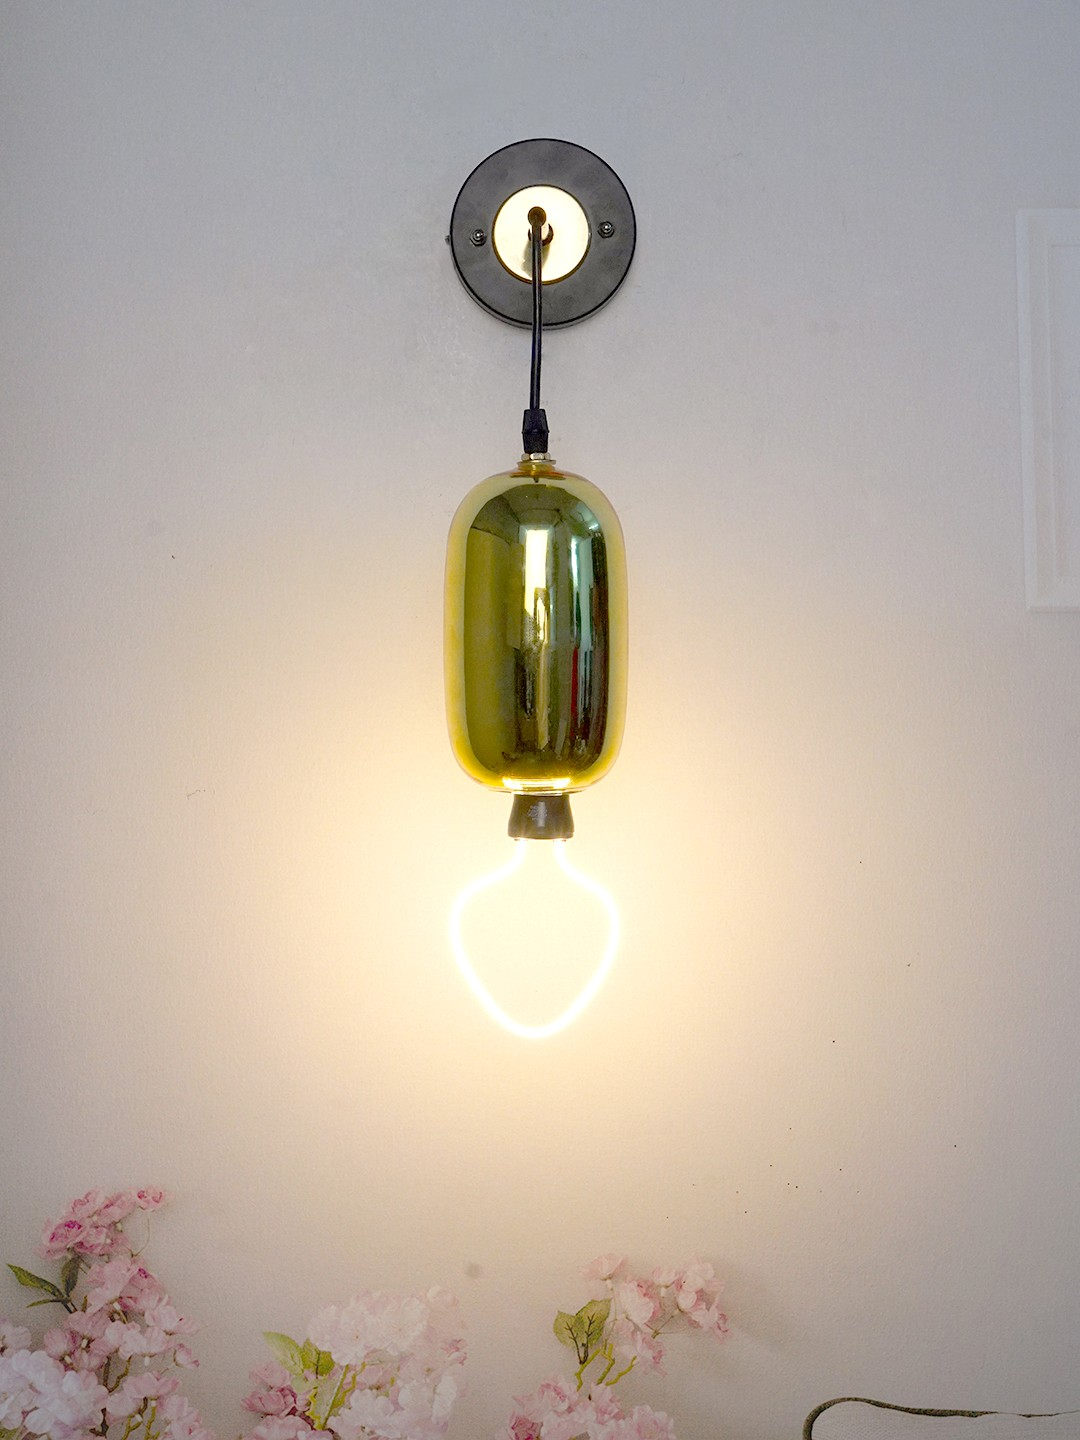 Capsule Shape Wall Hanging Light Wall Lamp in Gold Colour with Steel Body Wall Light for Living Room, Drawing Room & Halls